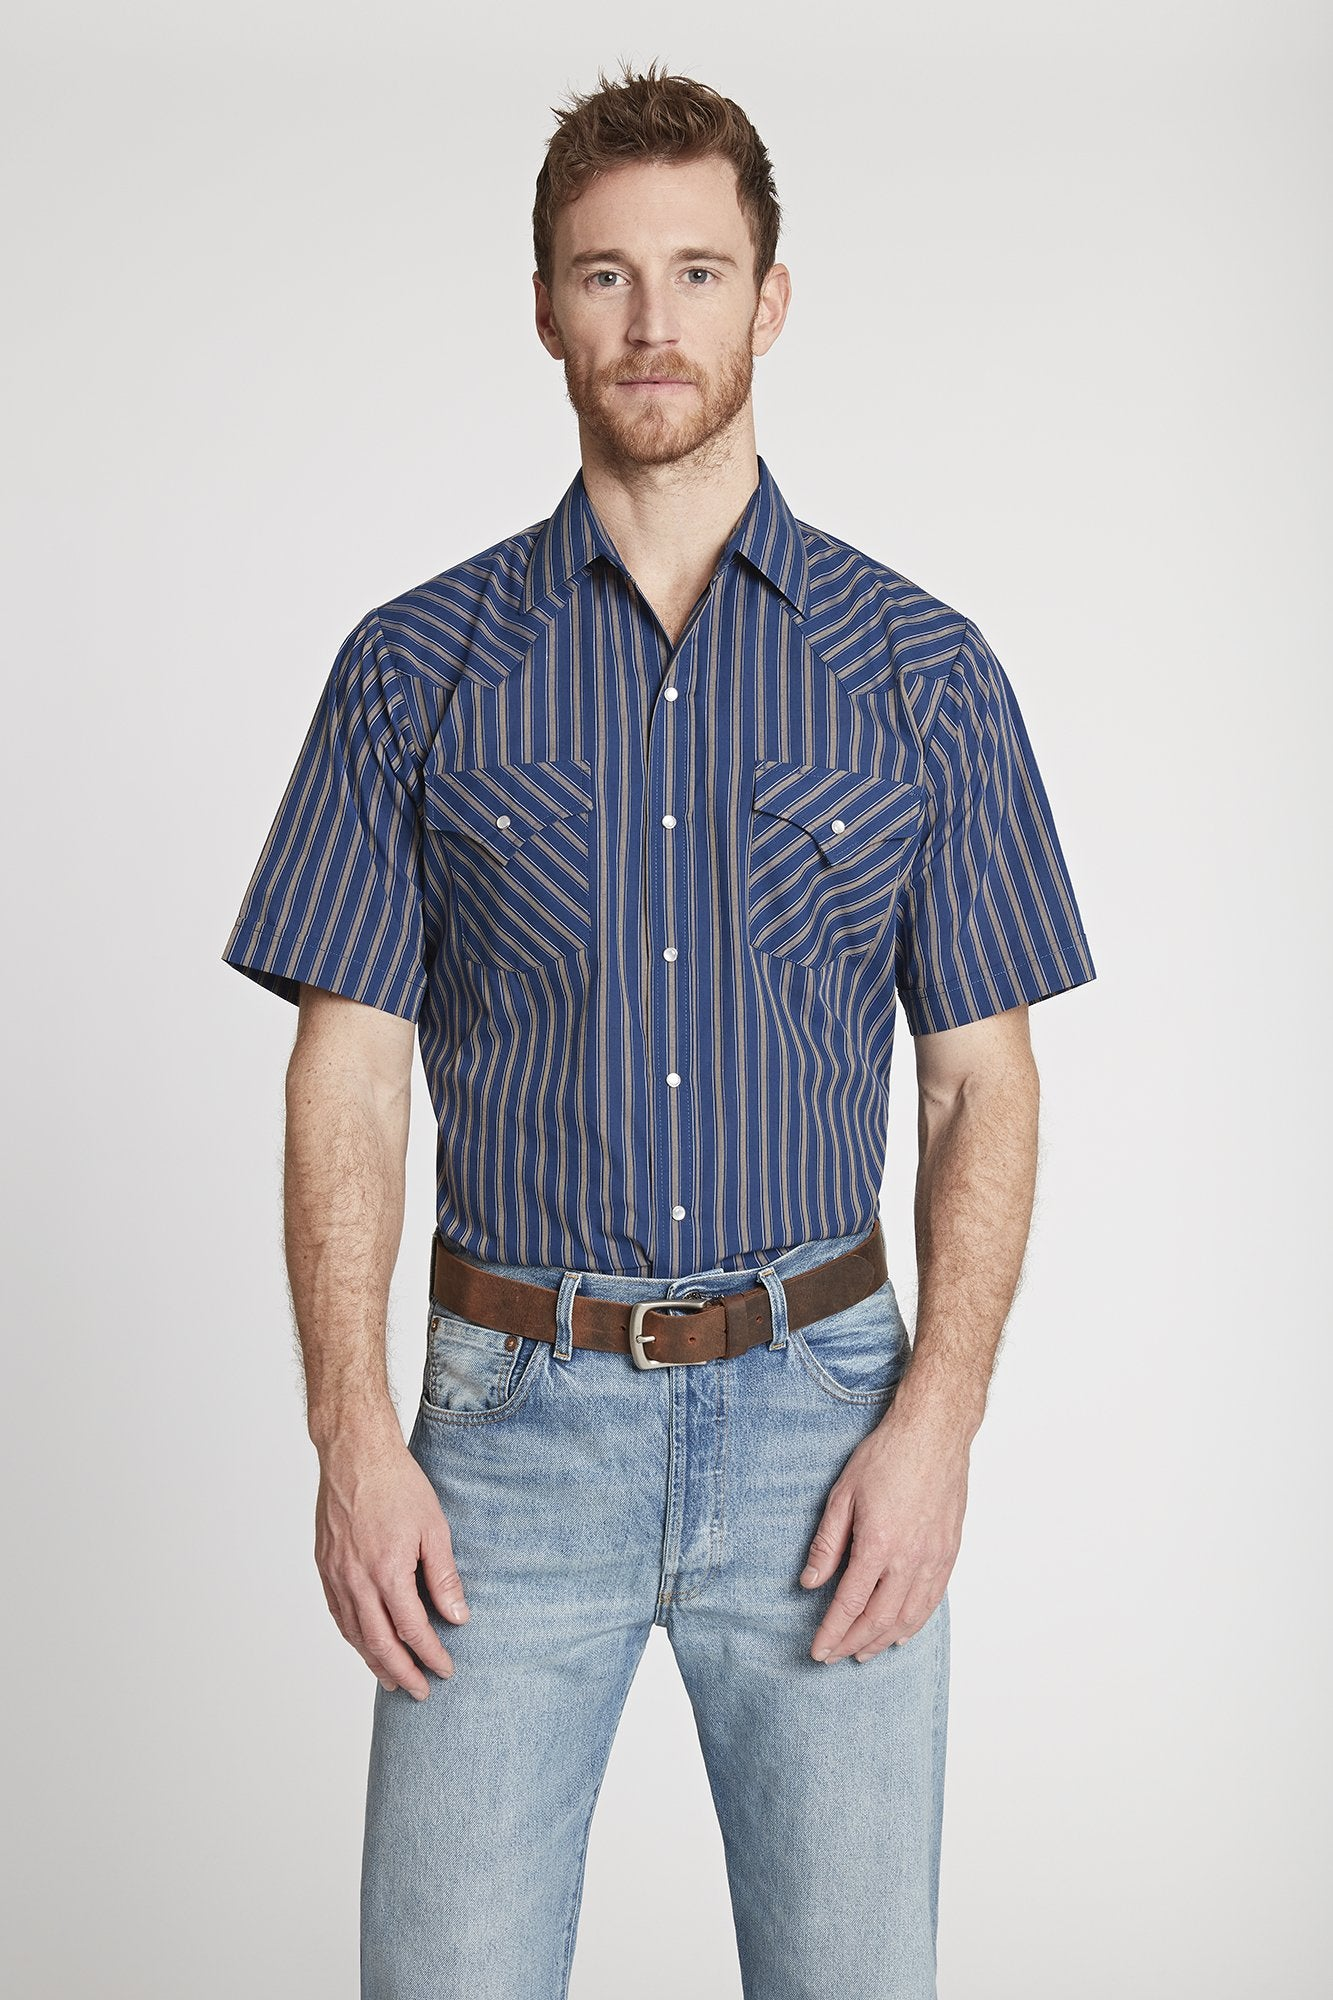 Men's Short Sleeve Striped Shirt in Blue Stripe